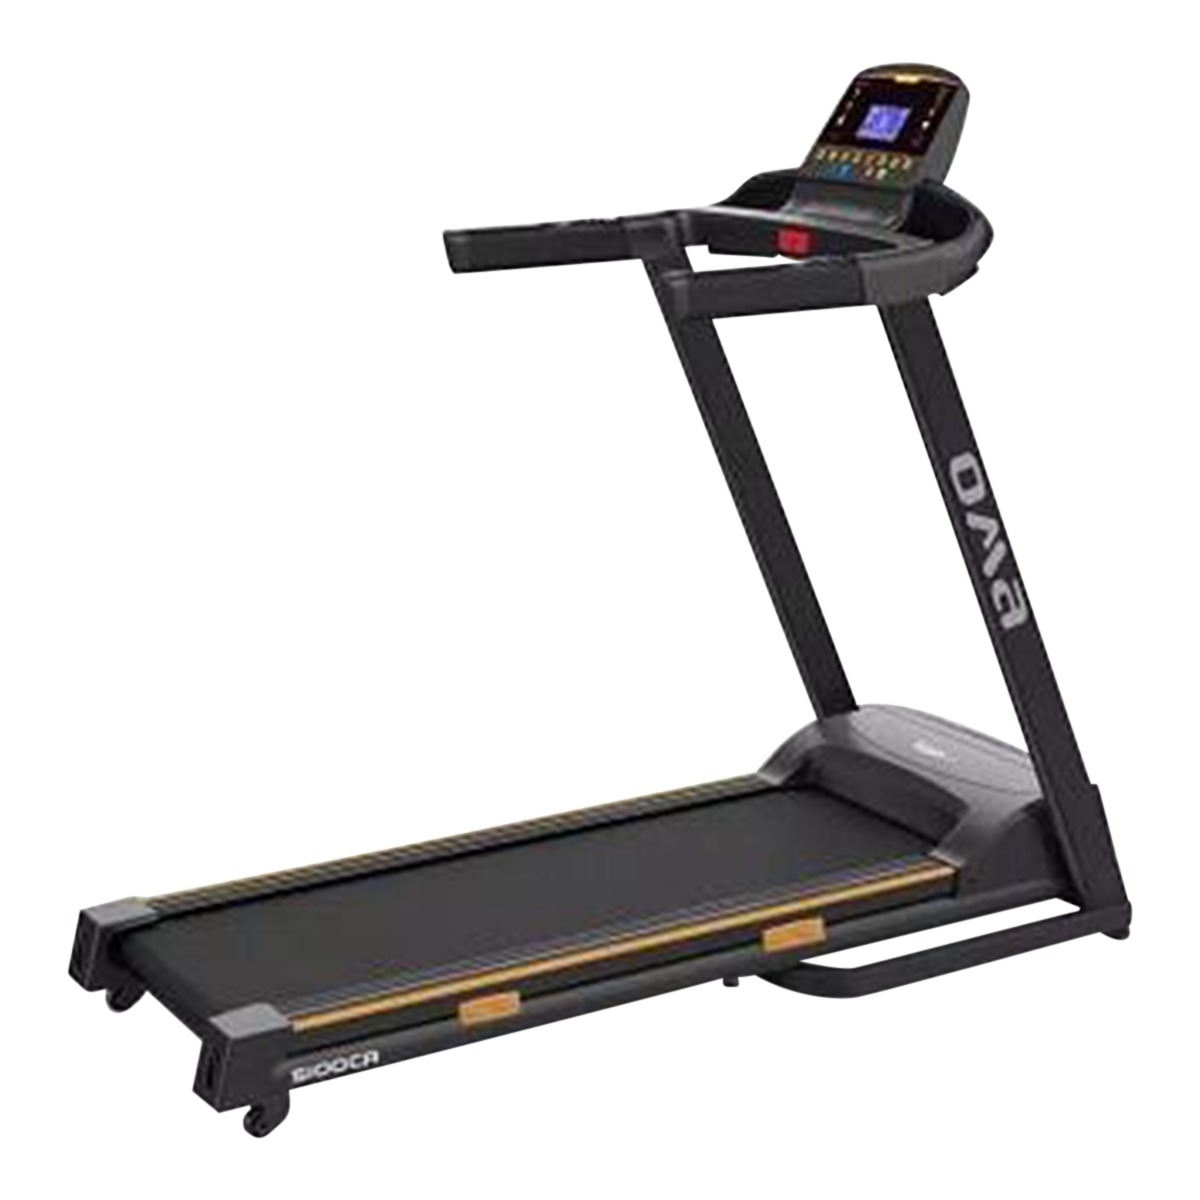 Treadmills Online Best Treadmill Price In Bangladesh 2021 Daraz Com Bd The increase reflects a stabilization of prices following their 17% plunge in the first quarter of the year, when the price of oil tumbled to its lowest level in more than 17 years. best treadmill price in bangladesh